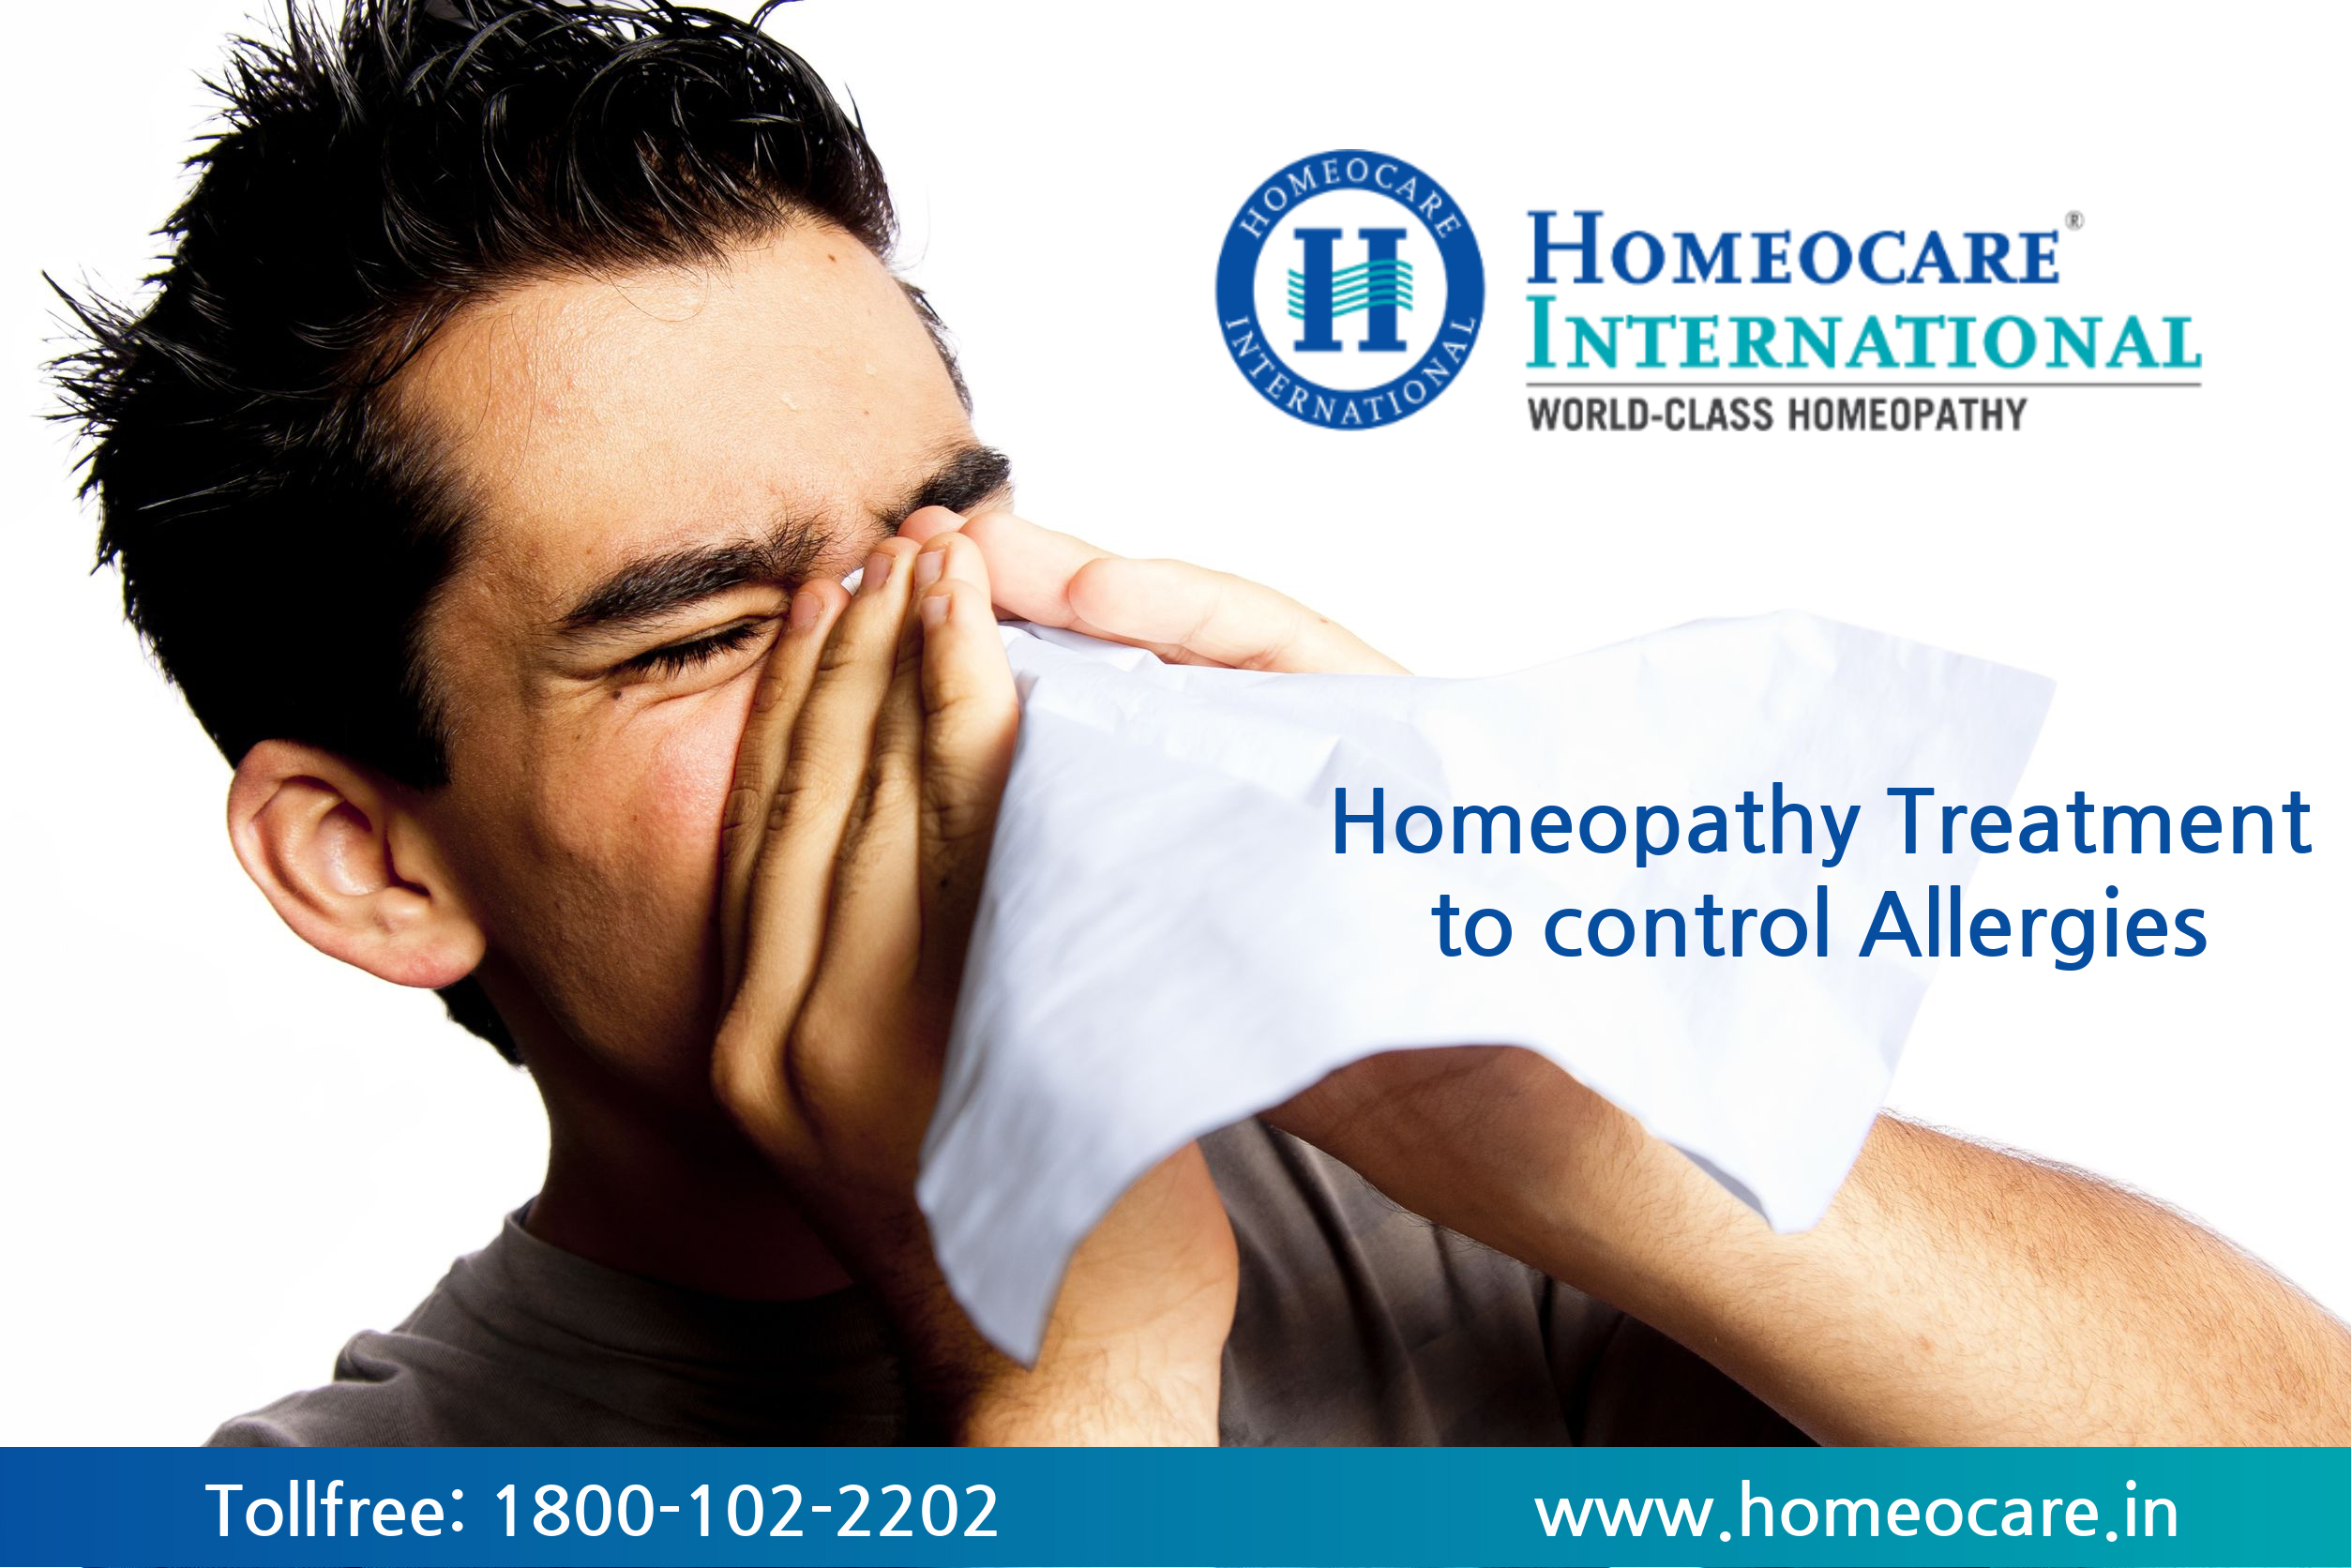 Homeopathy Treatment for Allergies